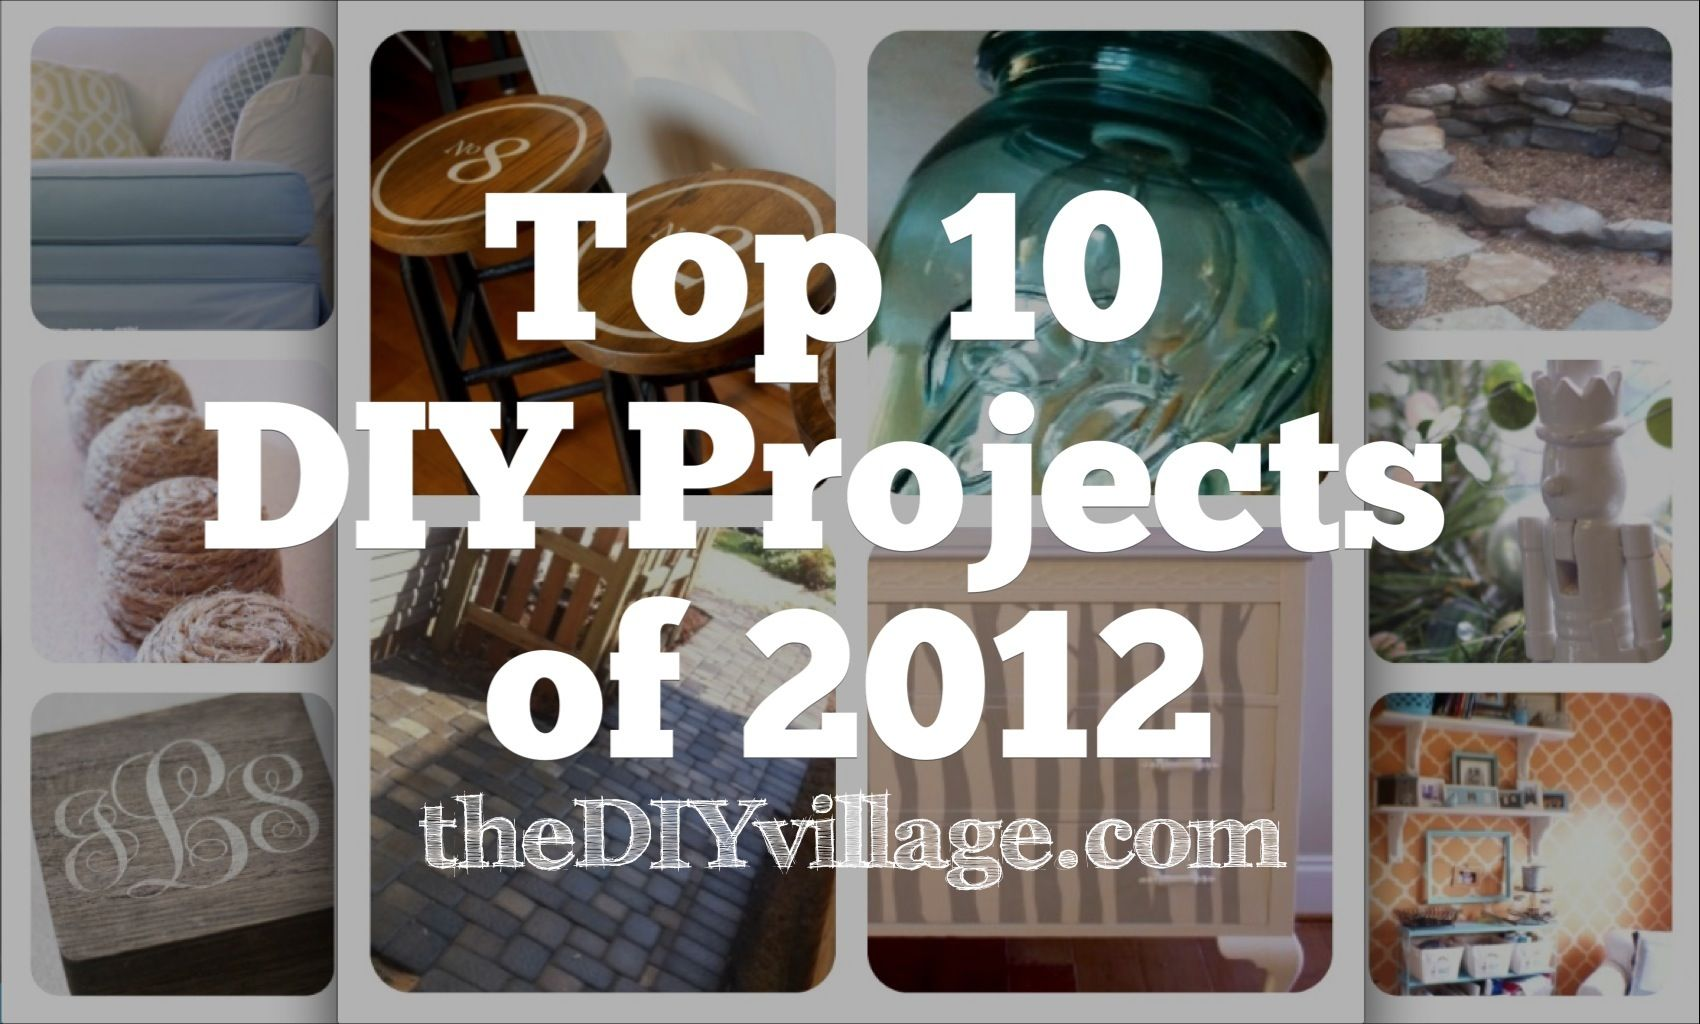 Top 10 do it yourself projects of 2012 craft crafty and diy ideas top 10 diy projects of 2012 by thediyvillage solutioingenieria Choice Image